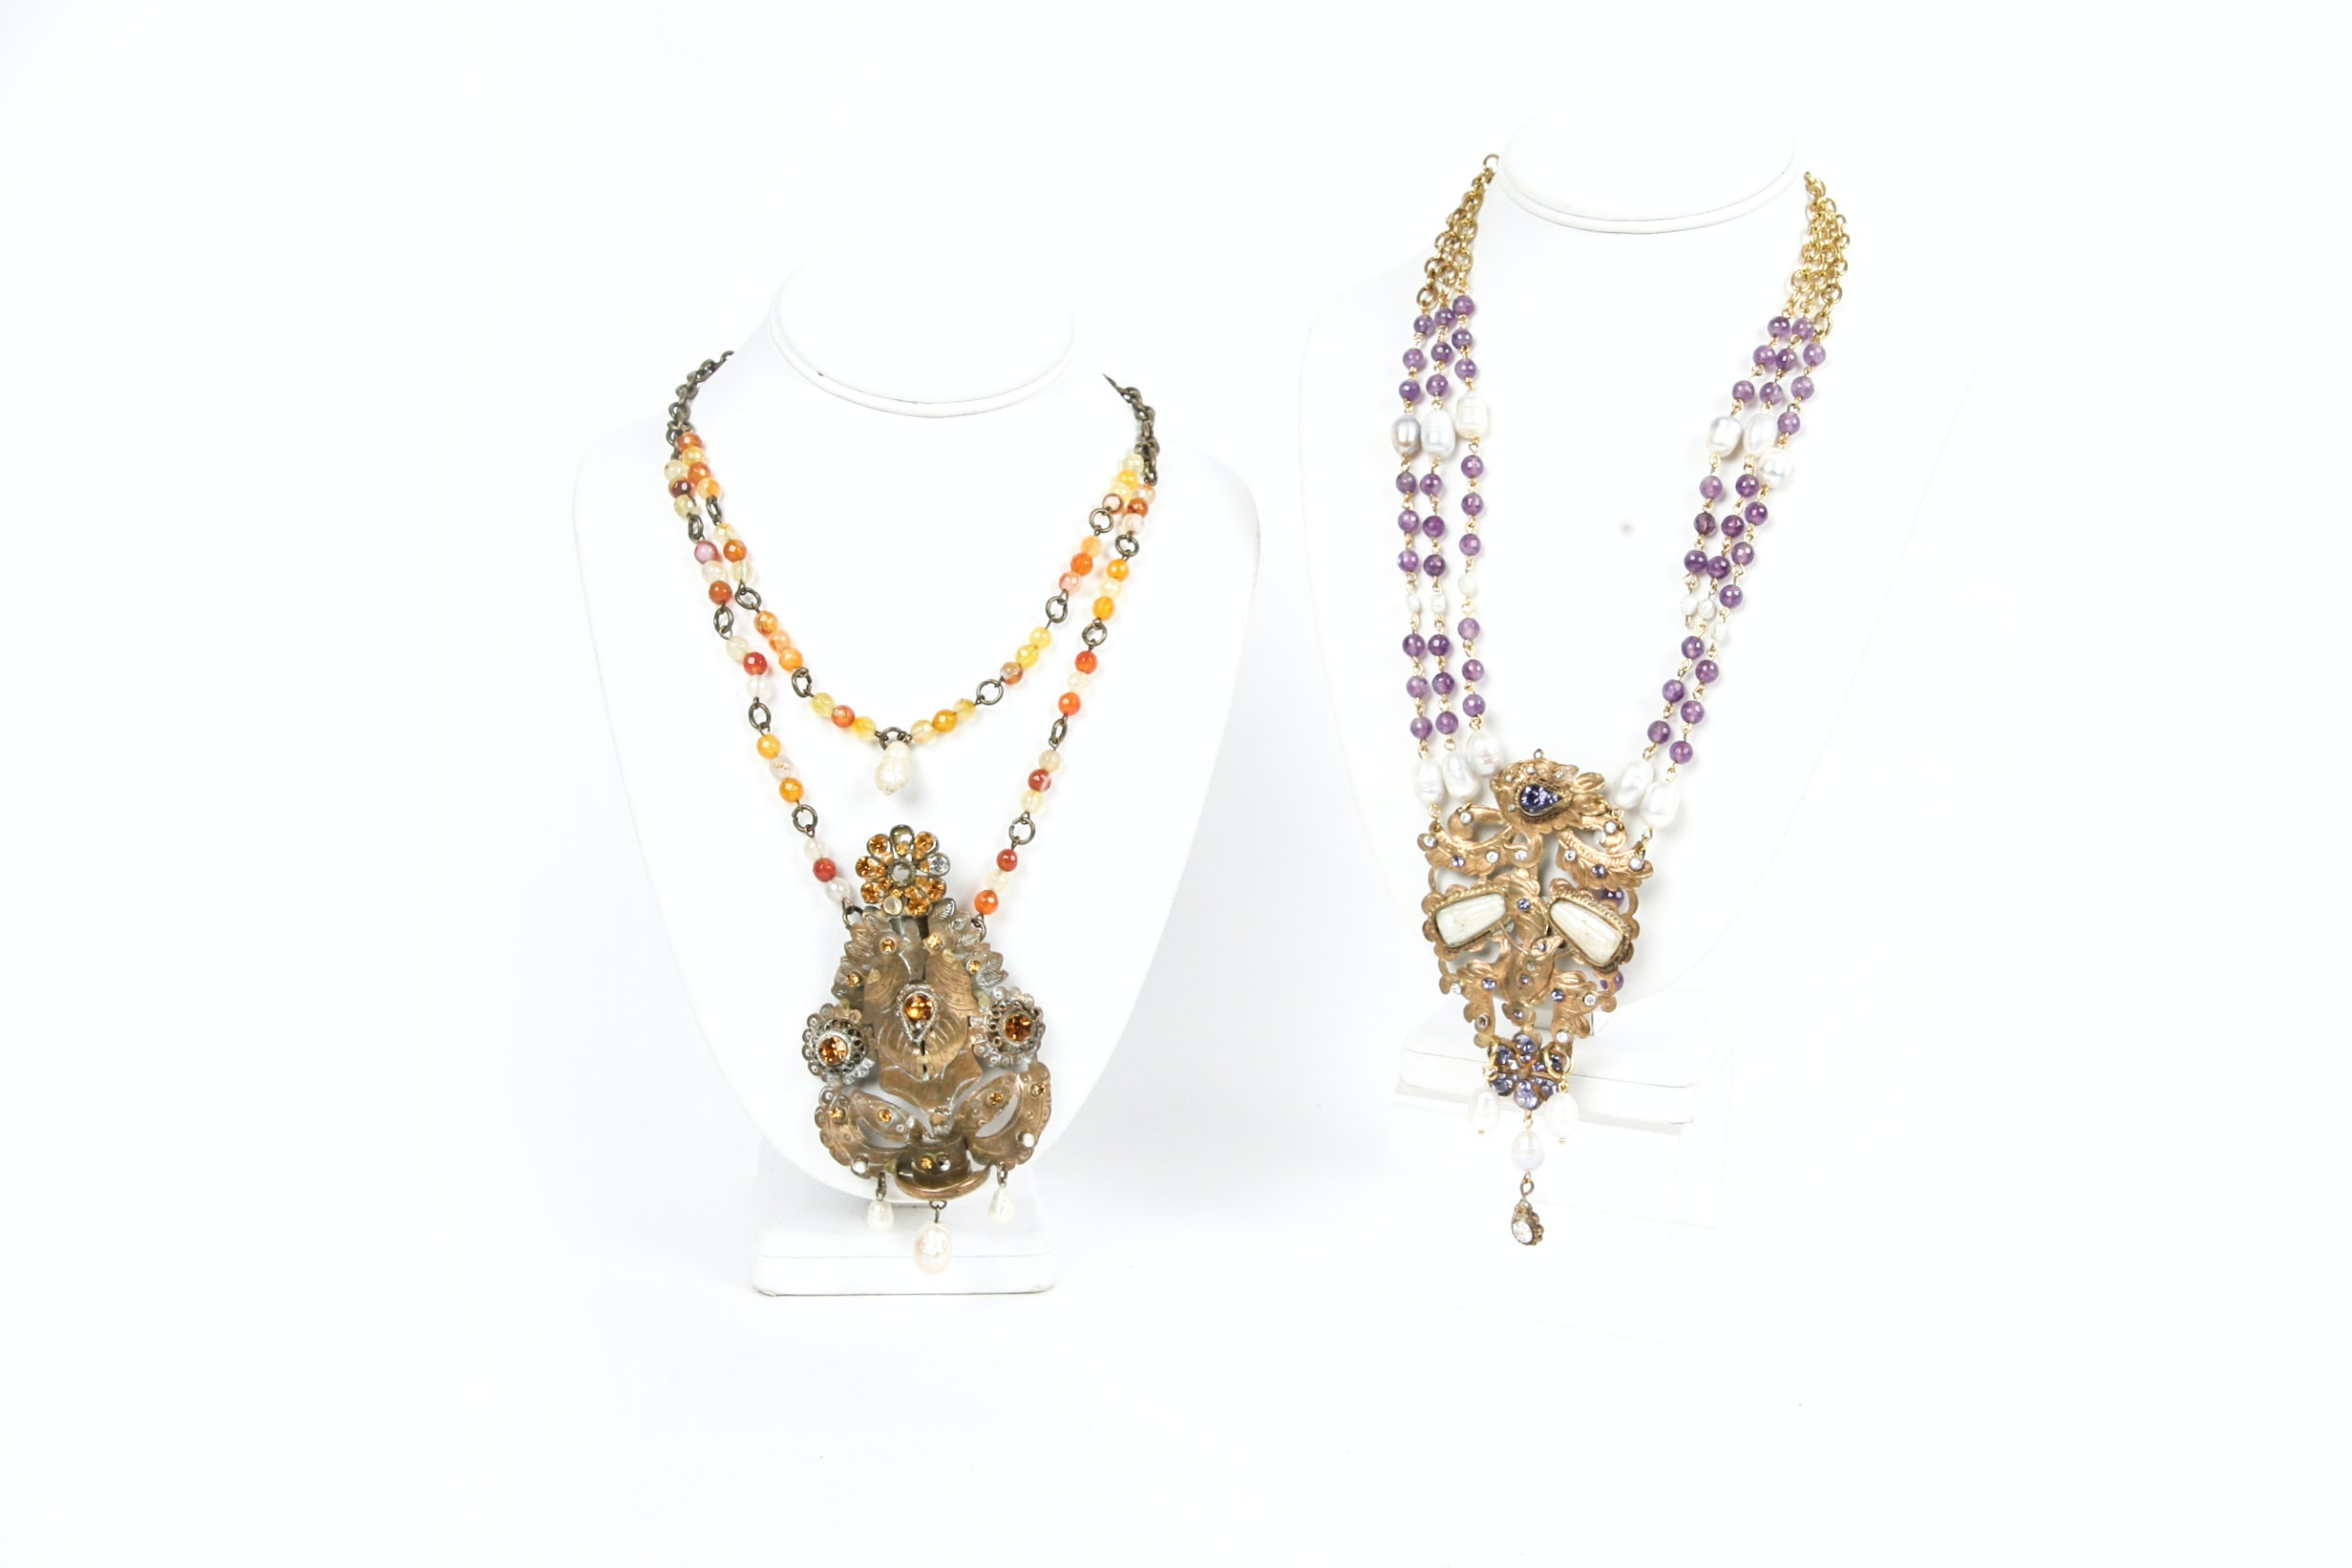 Gemstone and Pearl Statement Necklaces